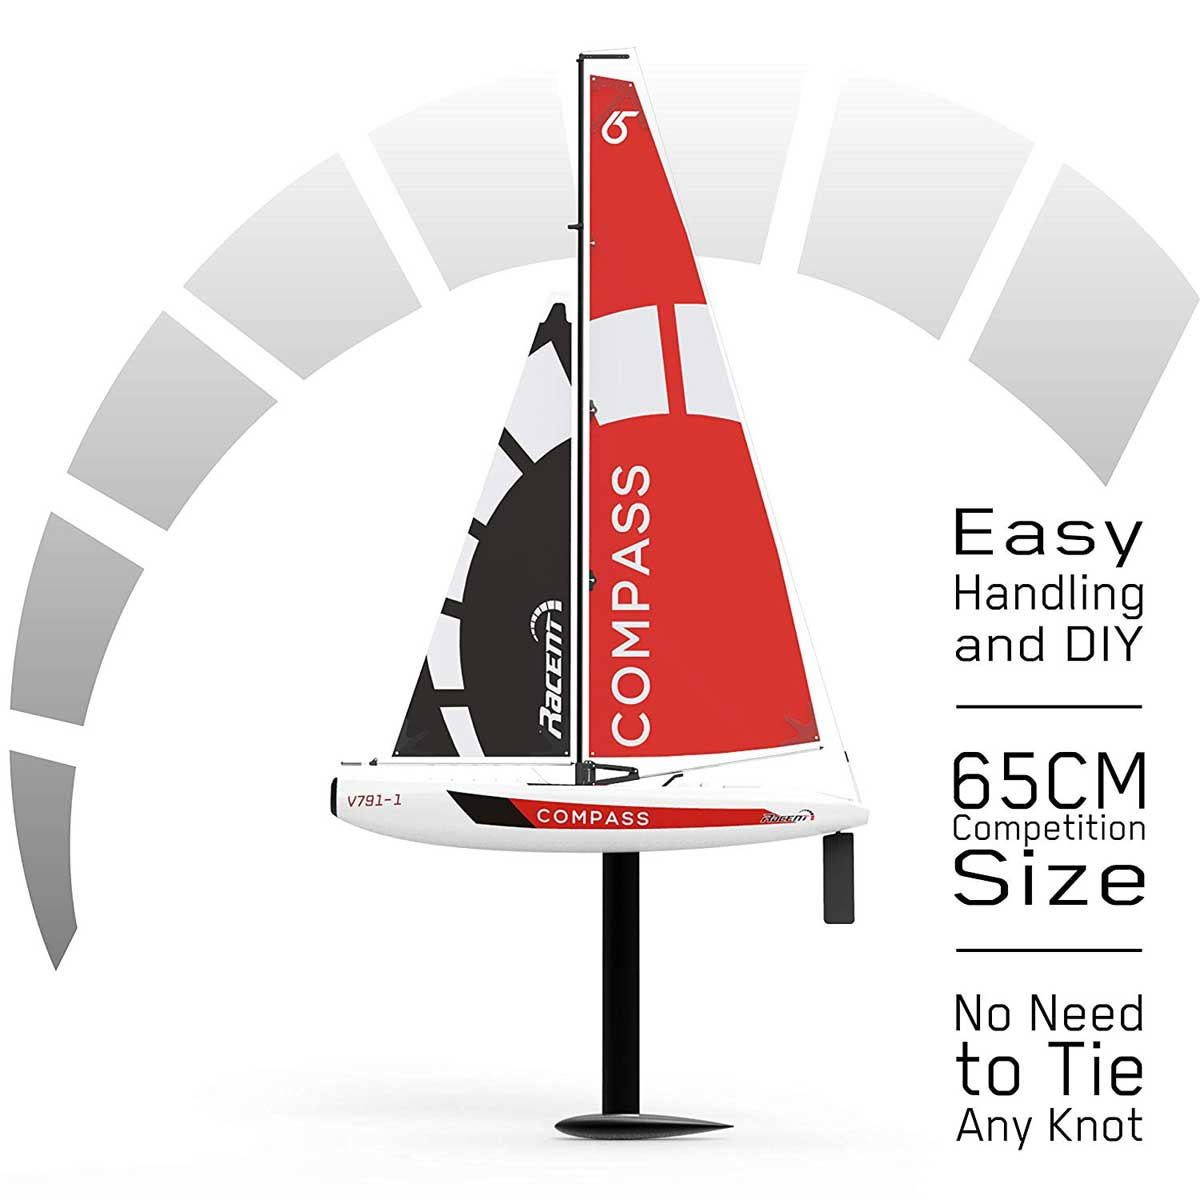 Compass 2 Channel Wind Power Sailboat with 650mm Hull for RG65 Class Competition (791-1) RTR Boats